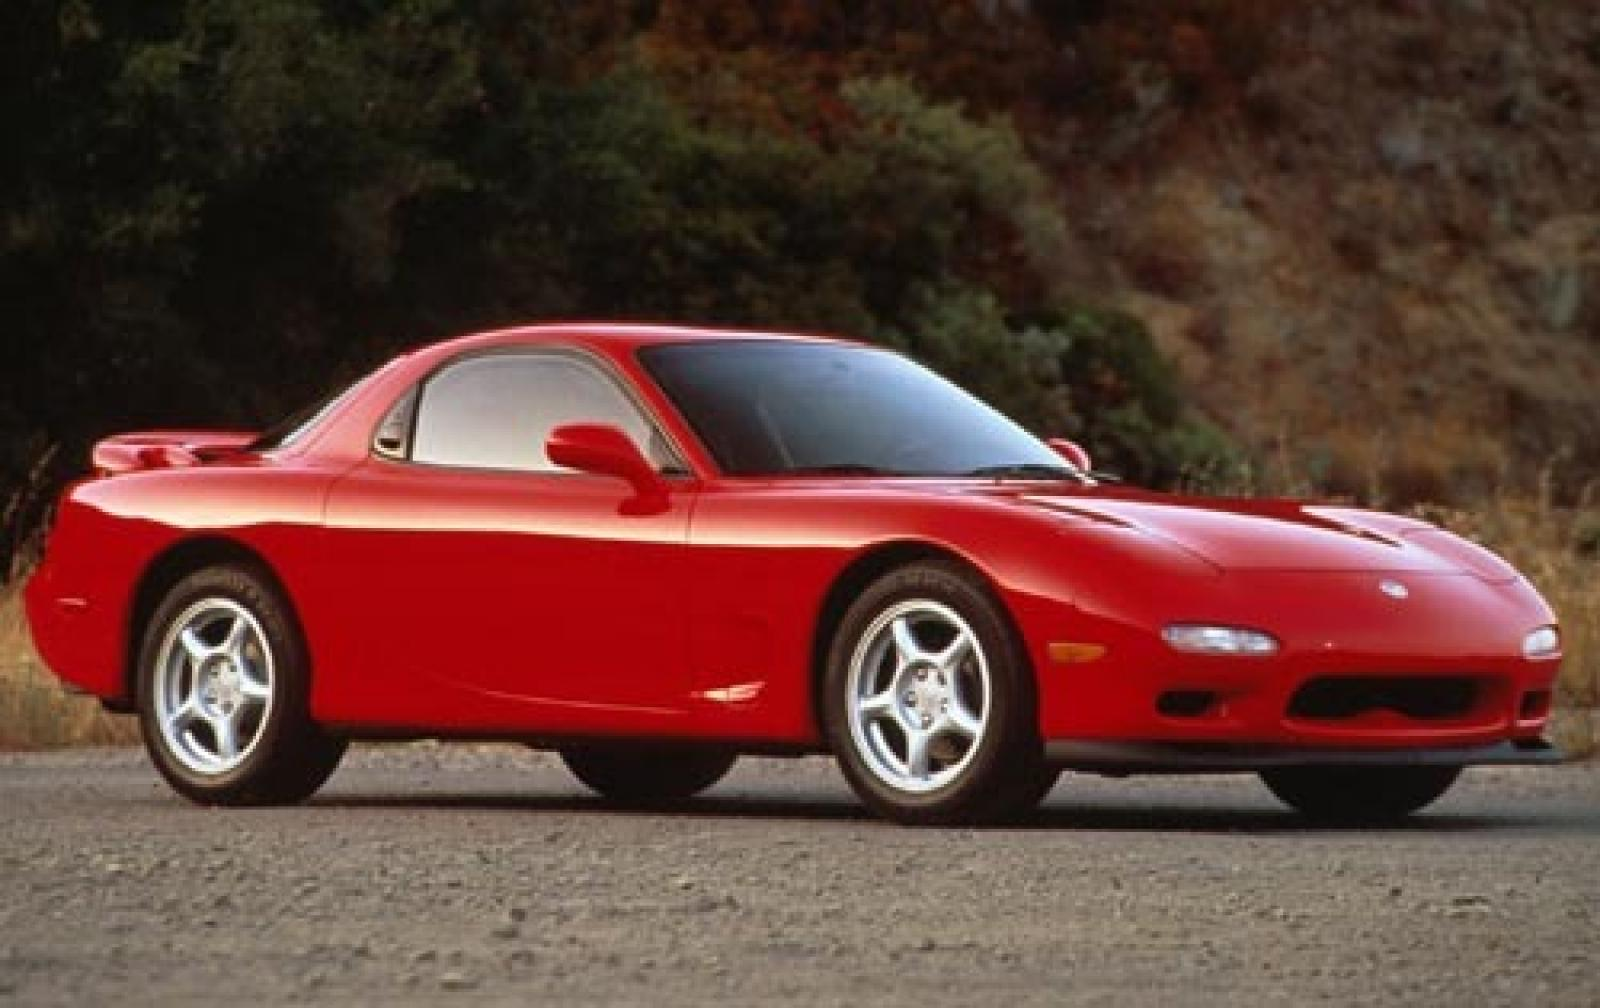 1995 Mazda Rx 7 Information And Photos Zombiedrive 1990 Engine Diagram 1 800 1024 1280 1600 Origin